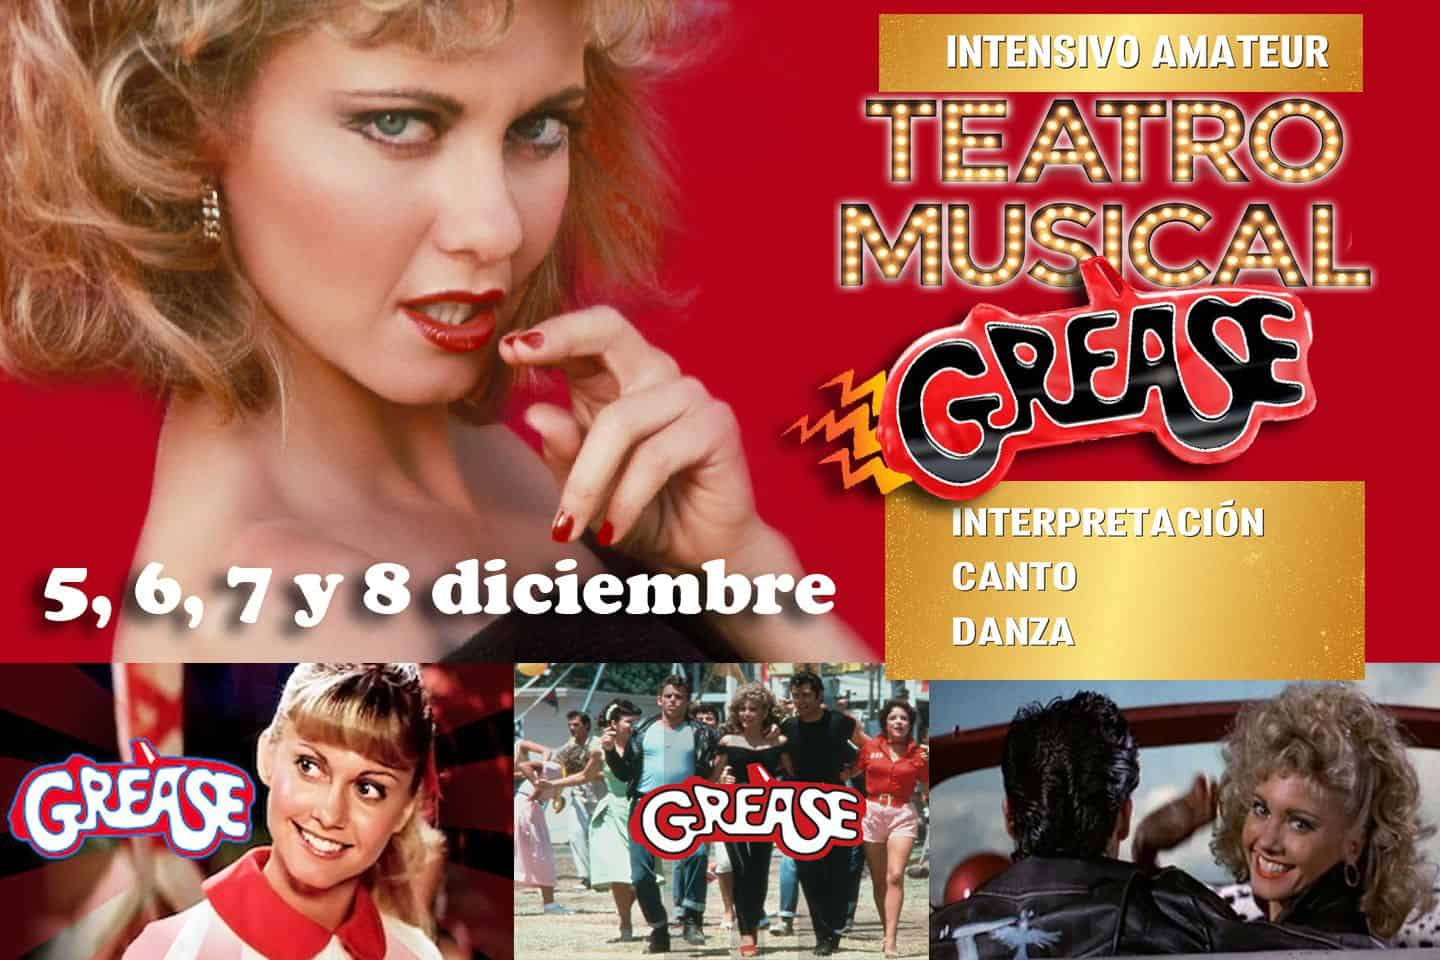 Grease. Intensivo Amateur de Teatro Musical. Diciembre 2020